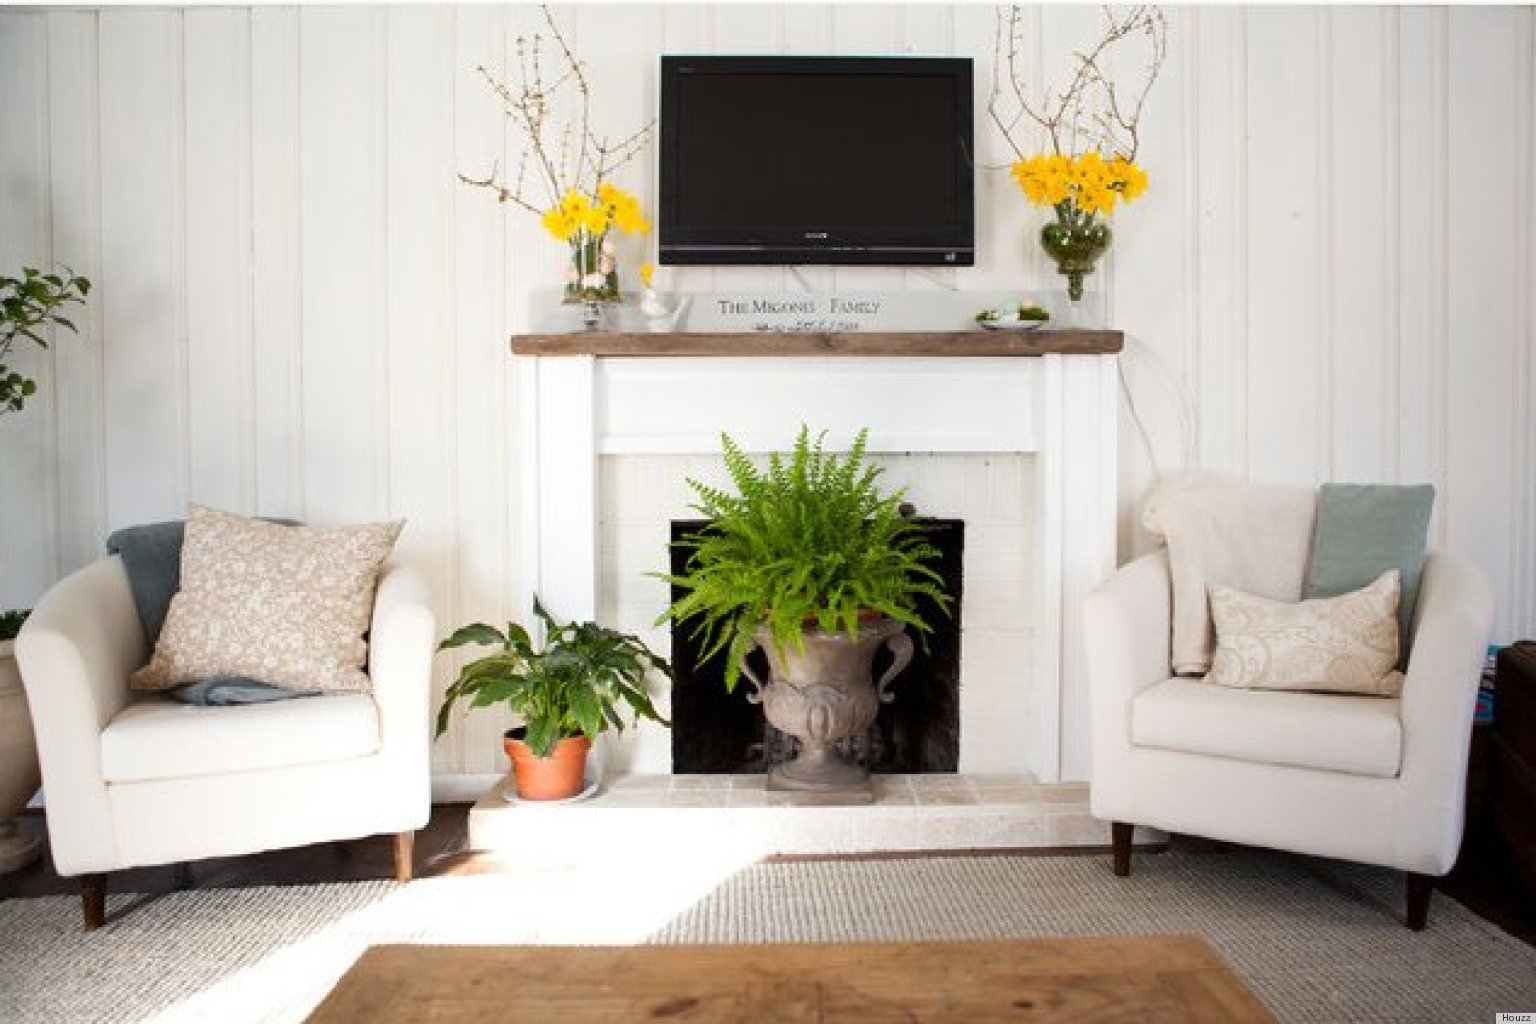 10 ways to decorate your fireplace in the summer since Decorating a living room with a fireplace